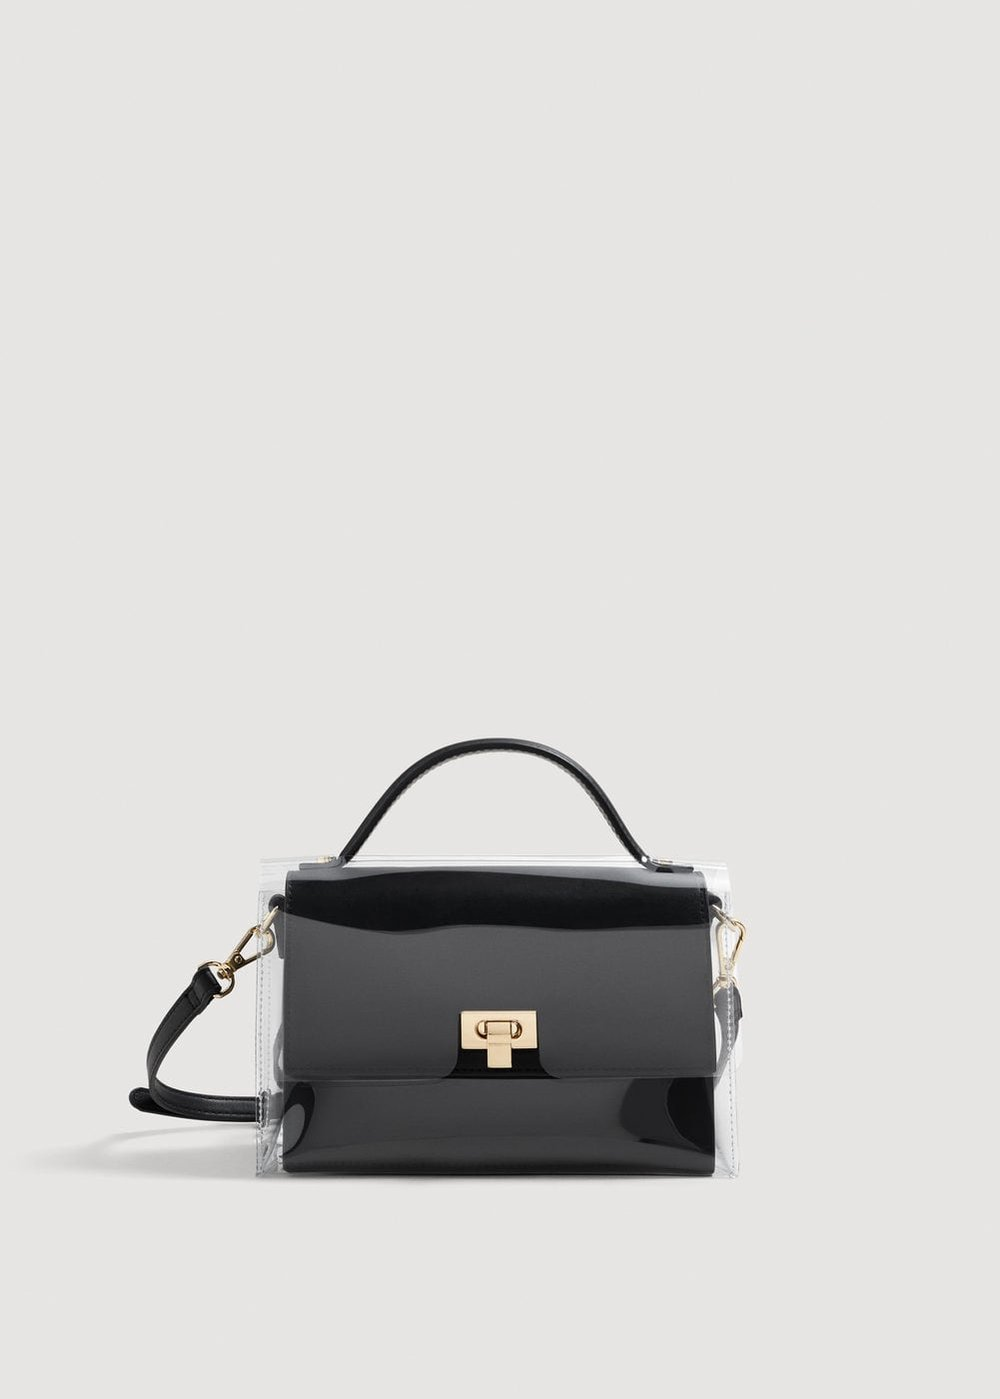 3. the bag - MANGO: Vinyl Cover Bag, £29.99Mango is the place to look for vinyl bags, and we absolutely love this mini satchel; the vinyl covering is detachable so you can change up your look.